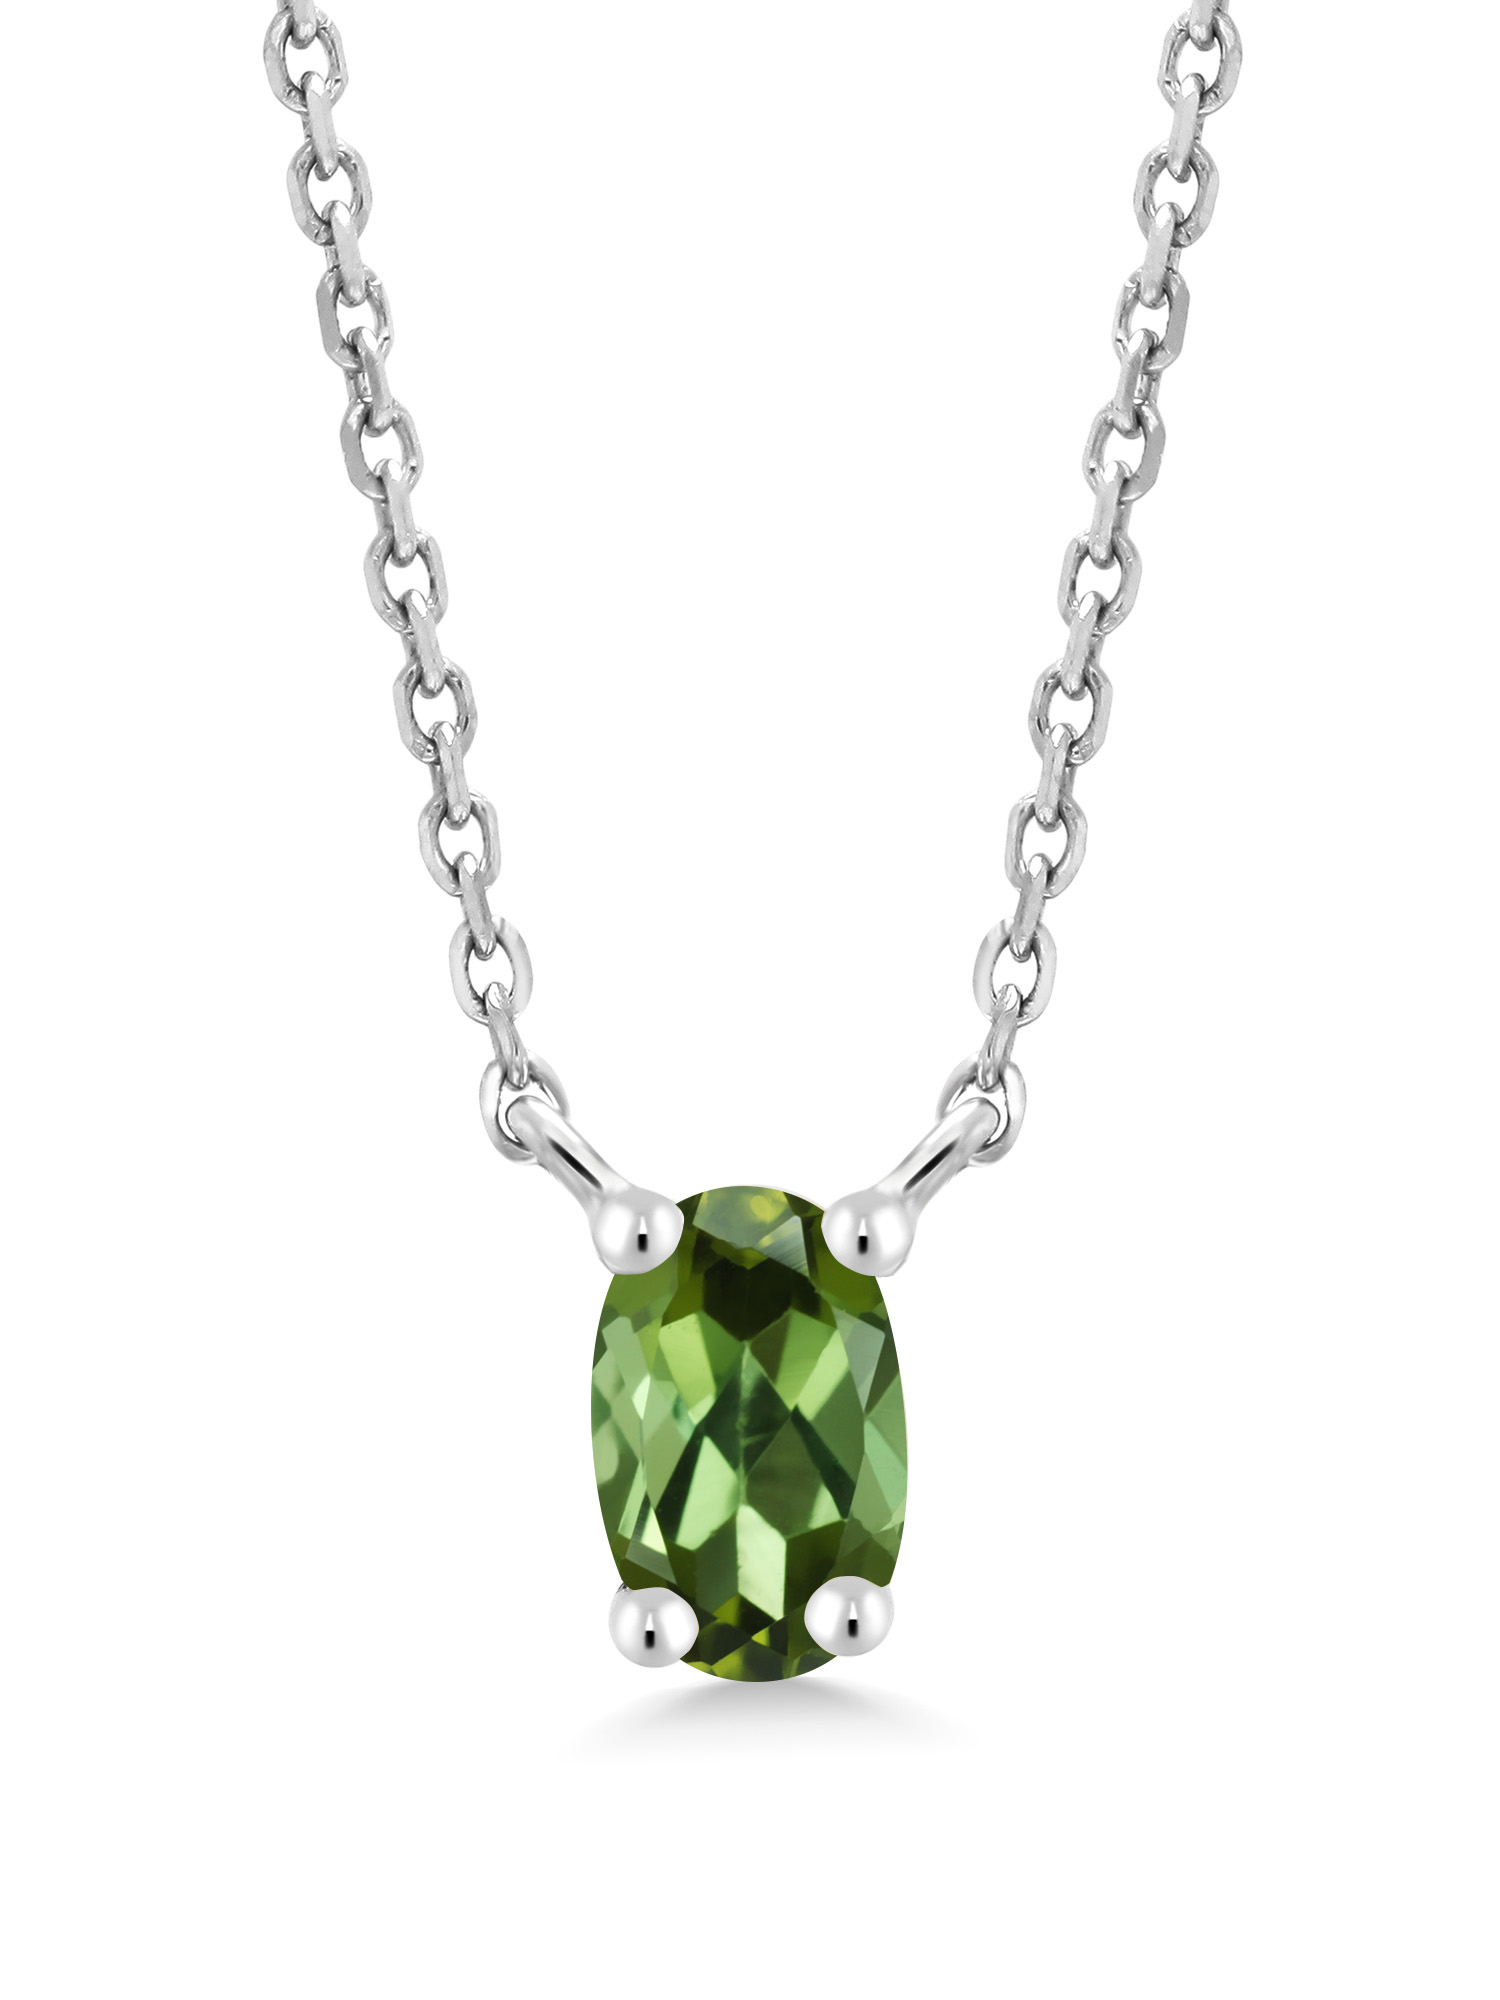 Oval Green Tourmaline 10K White Gold Necklace by